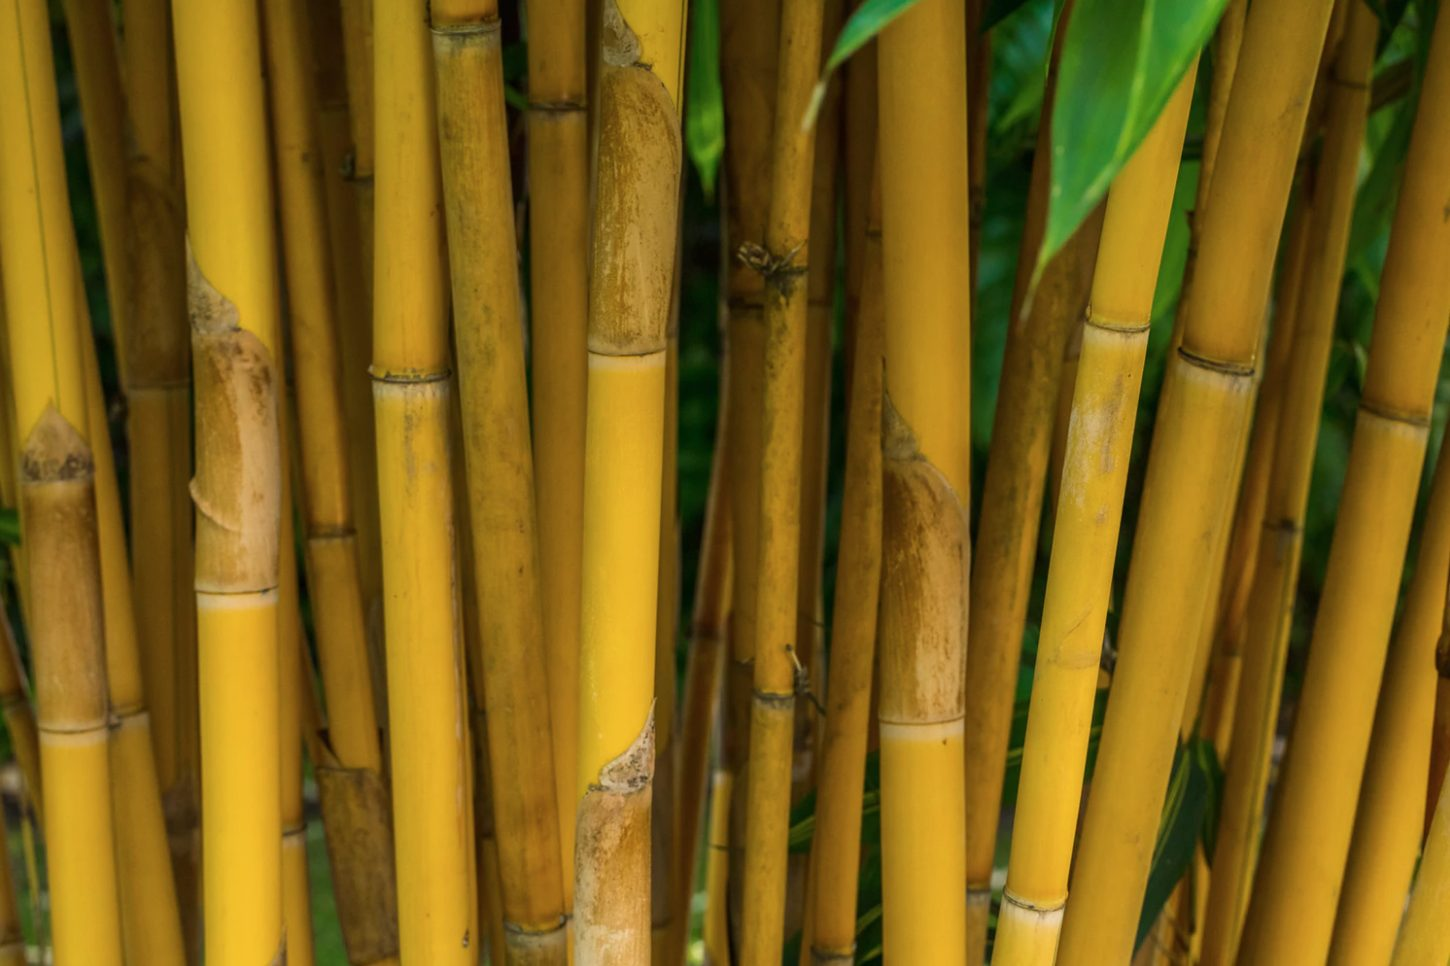 The best bamboo species for poles